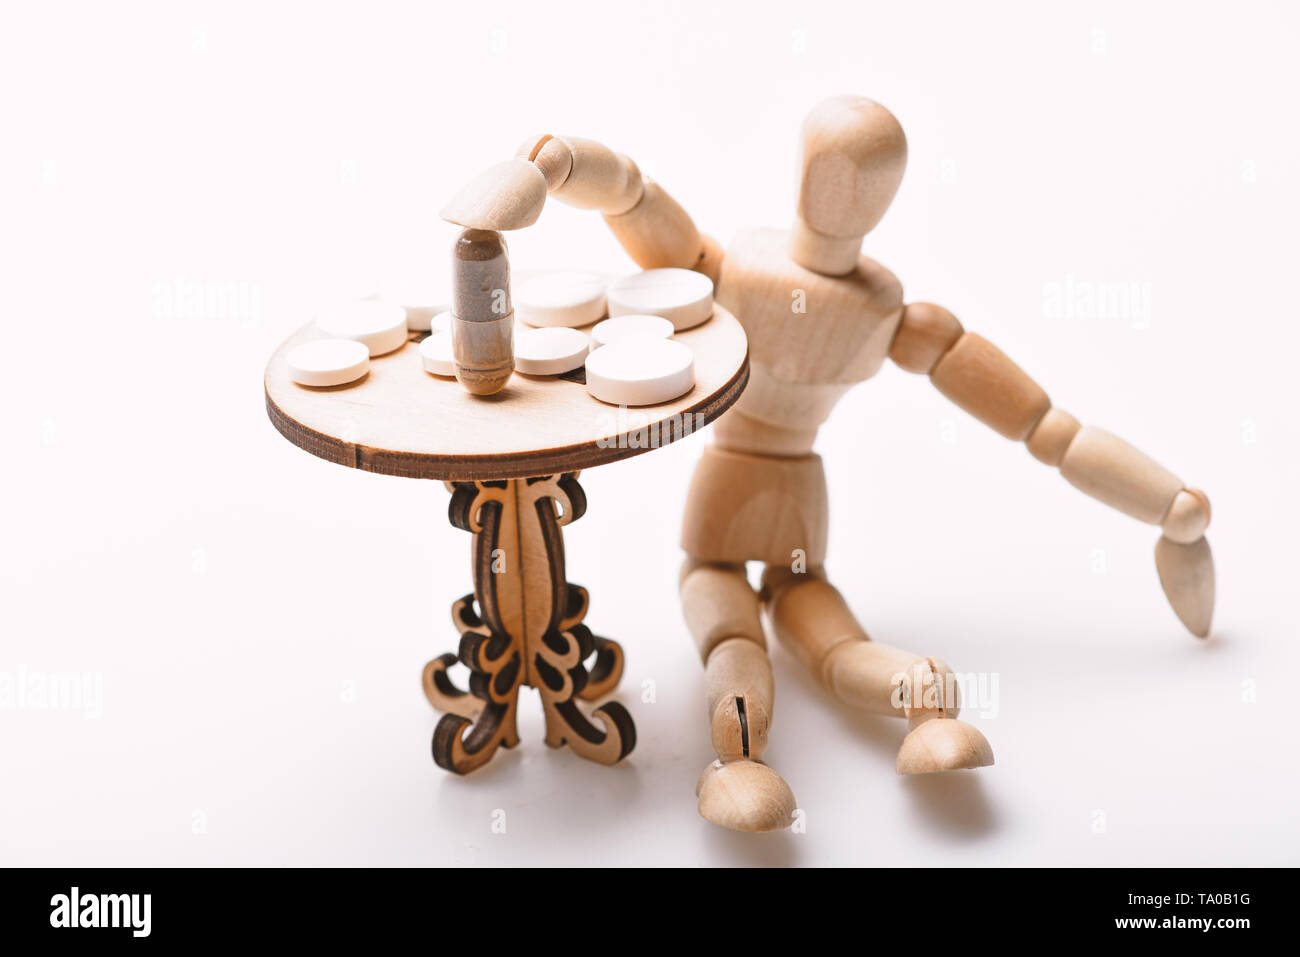 Medication regimen. Human wooden dummy near table with medicines. Tips tackling complex medication regimen. Take medicines after food. Health care and medical treatment. Pills on tiny wooden table. - Stock Image